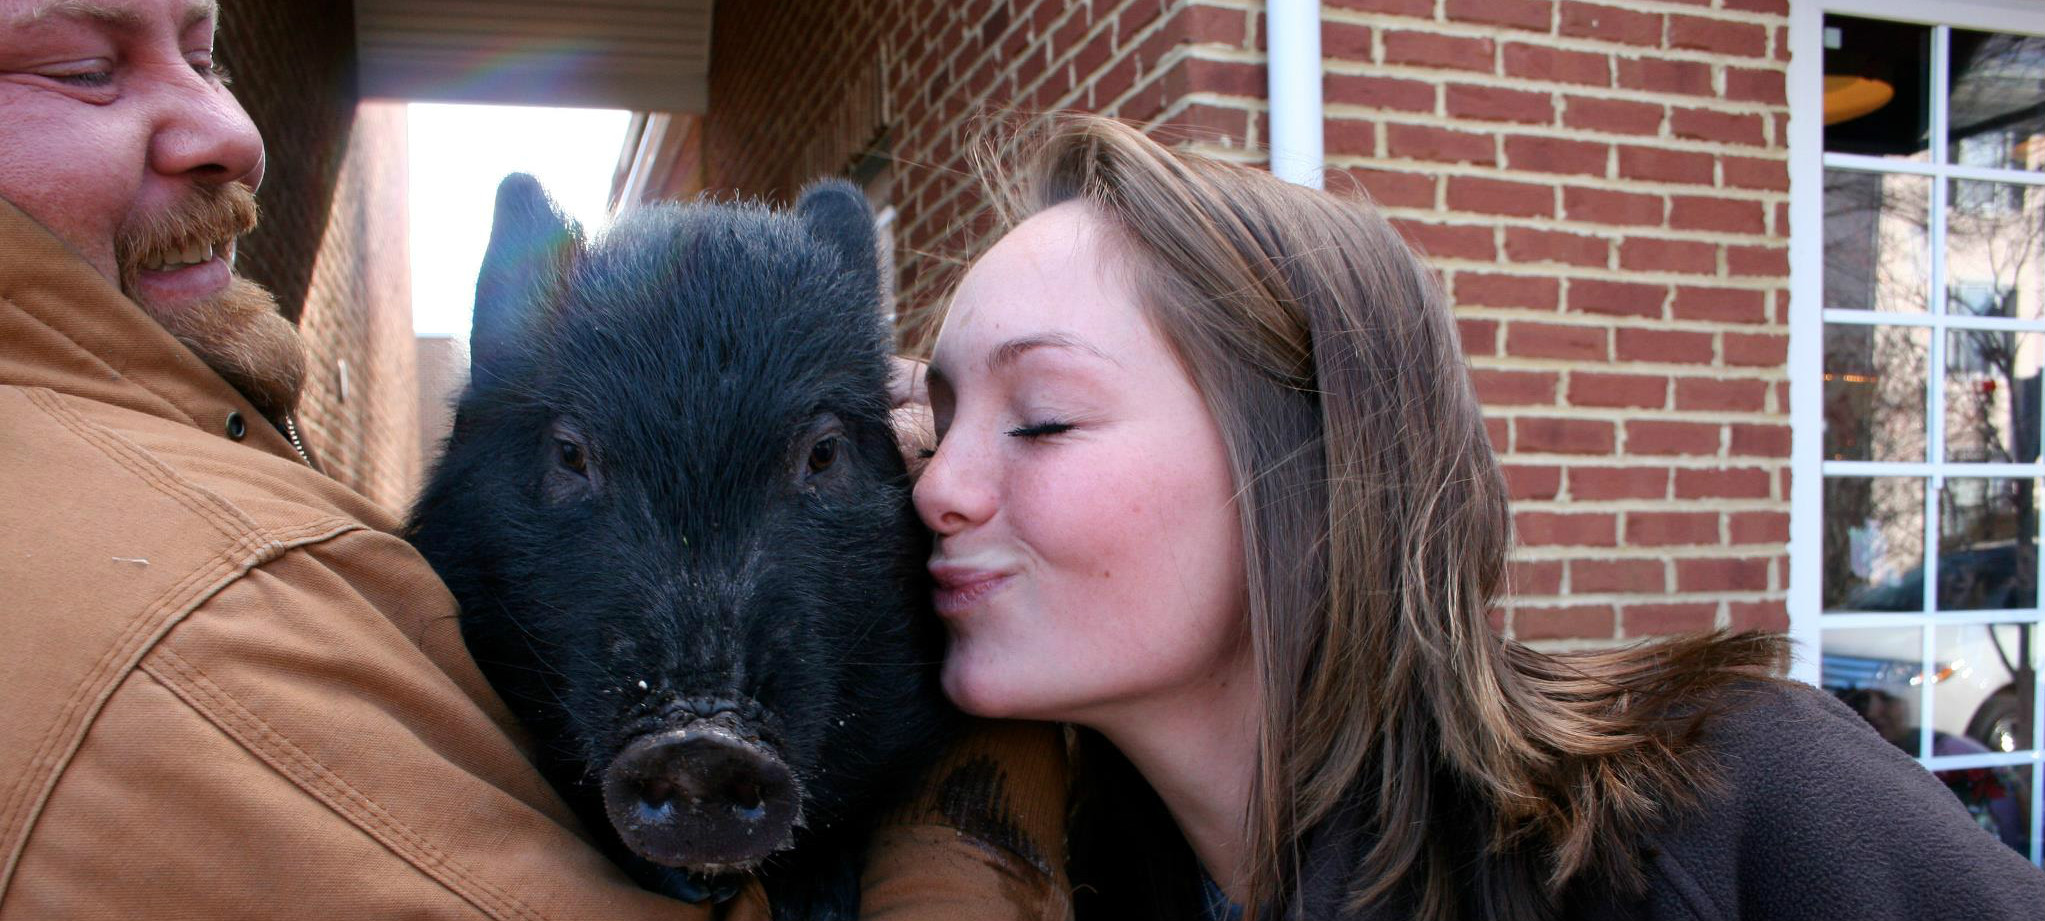 Easton's BBQ Joint Invites You to Kiss a Pig for Charity